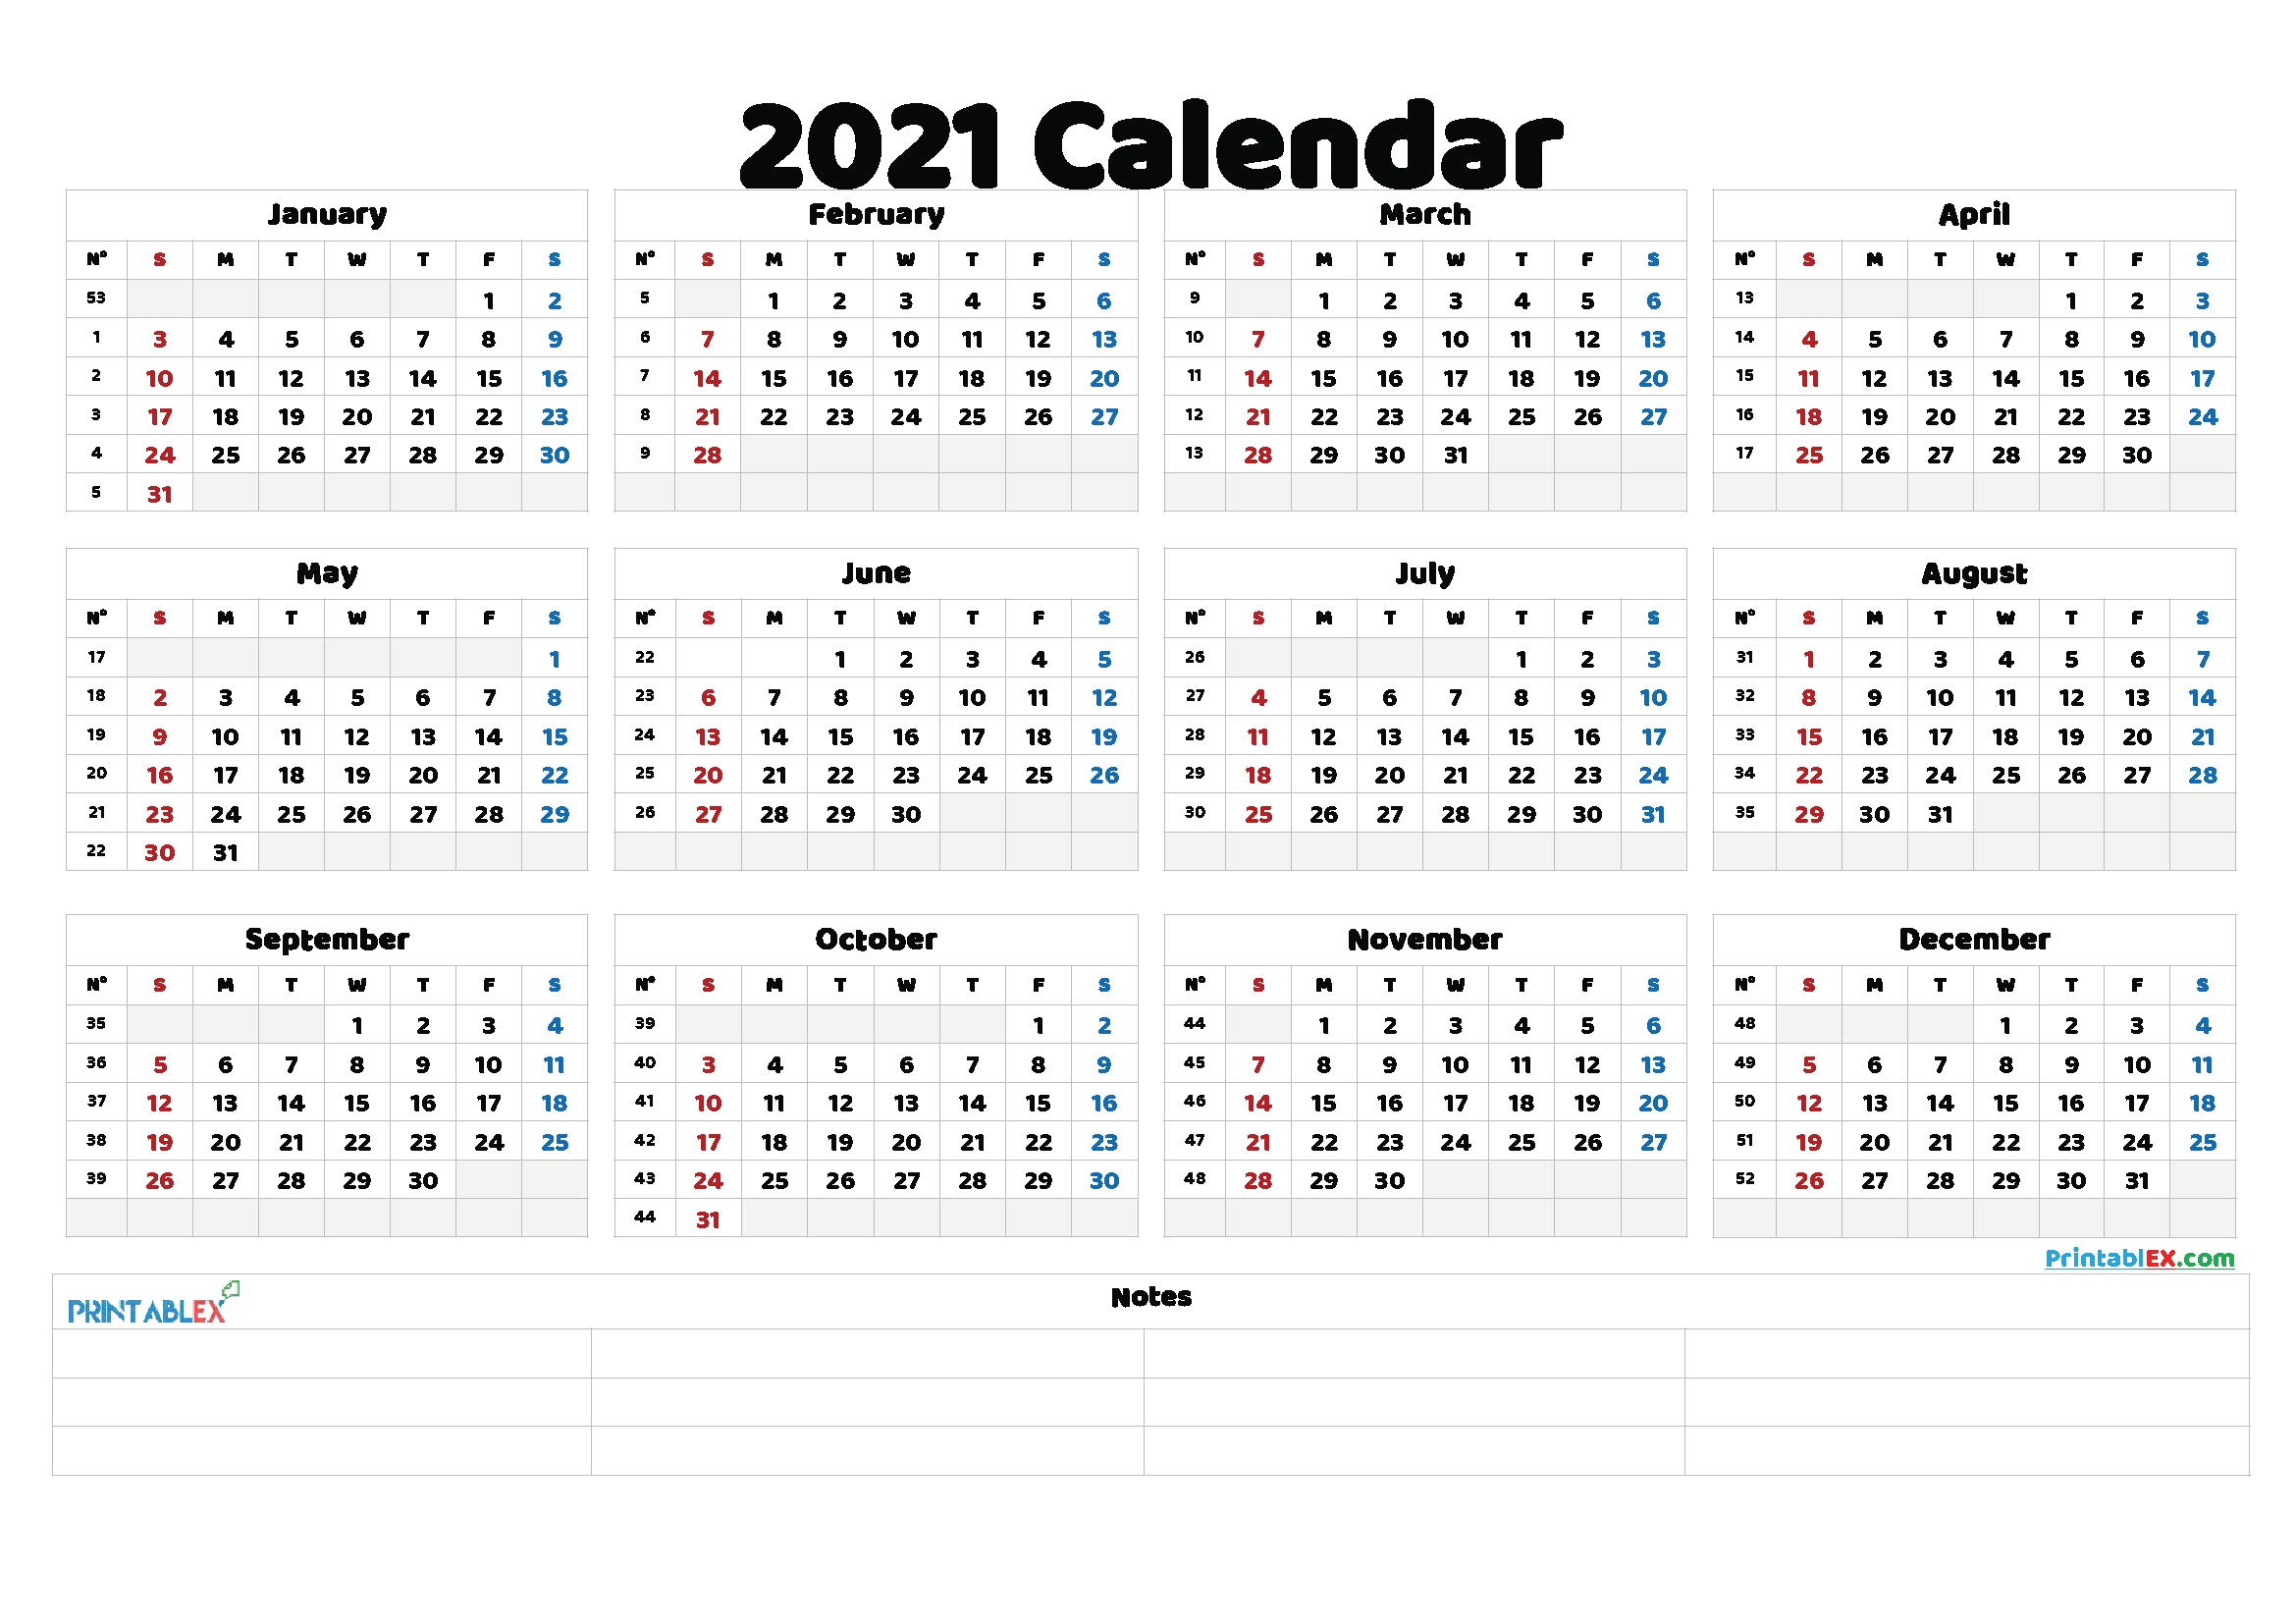 Free Printable 2021 Calendar With Religious Holidays   Free 2021 Printable Calendars throughout 2021 Calendar Printable Pdf Free Pay Date And Holiday